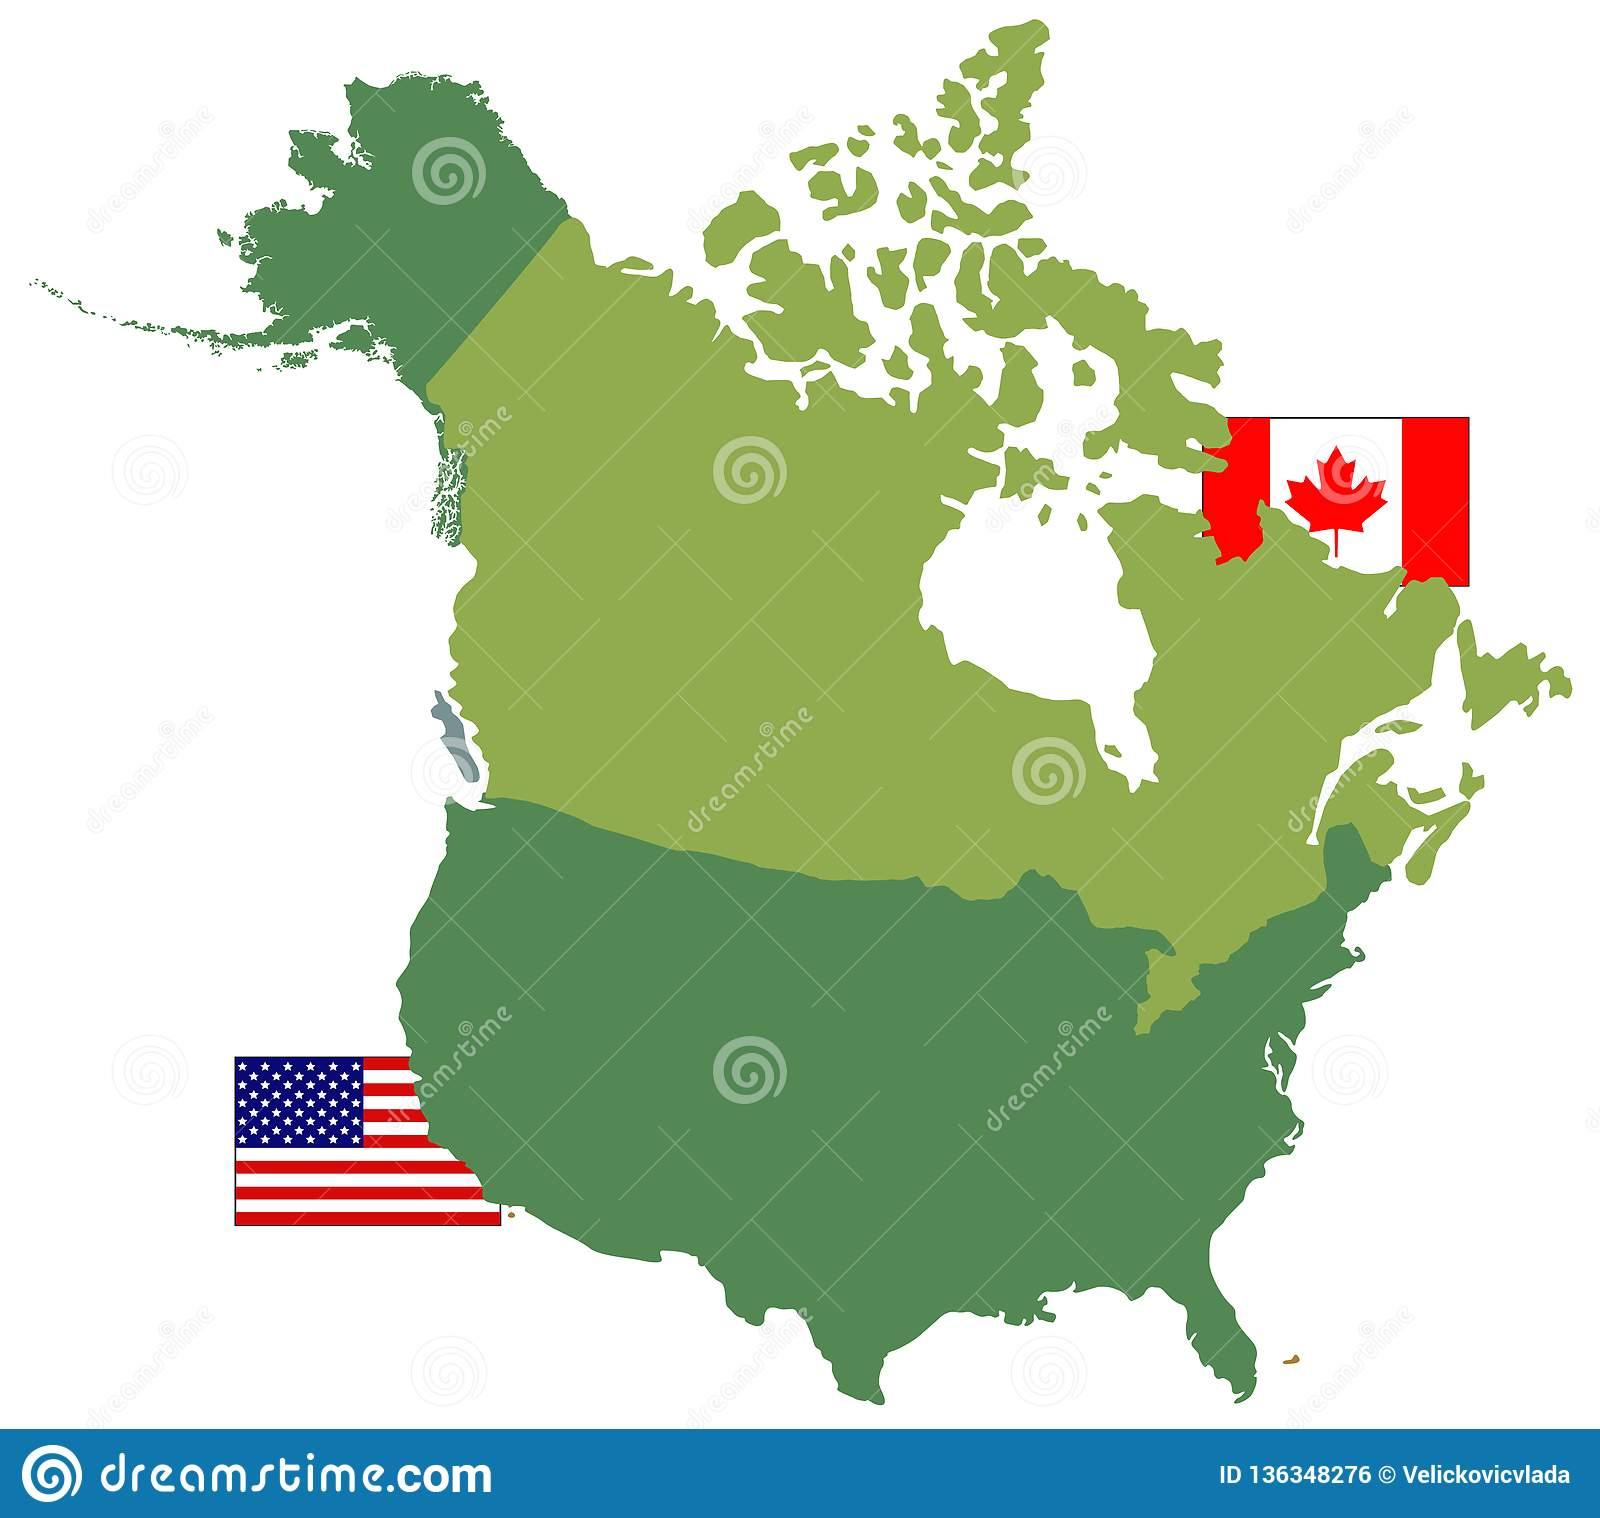 Map Of Toronto Canada And Usa.Canada And Usa Maps And Flags Two Countries In North America Stock